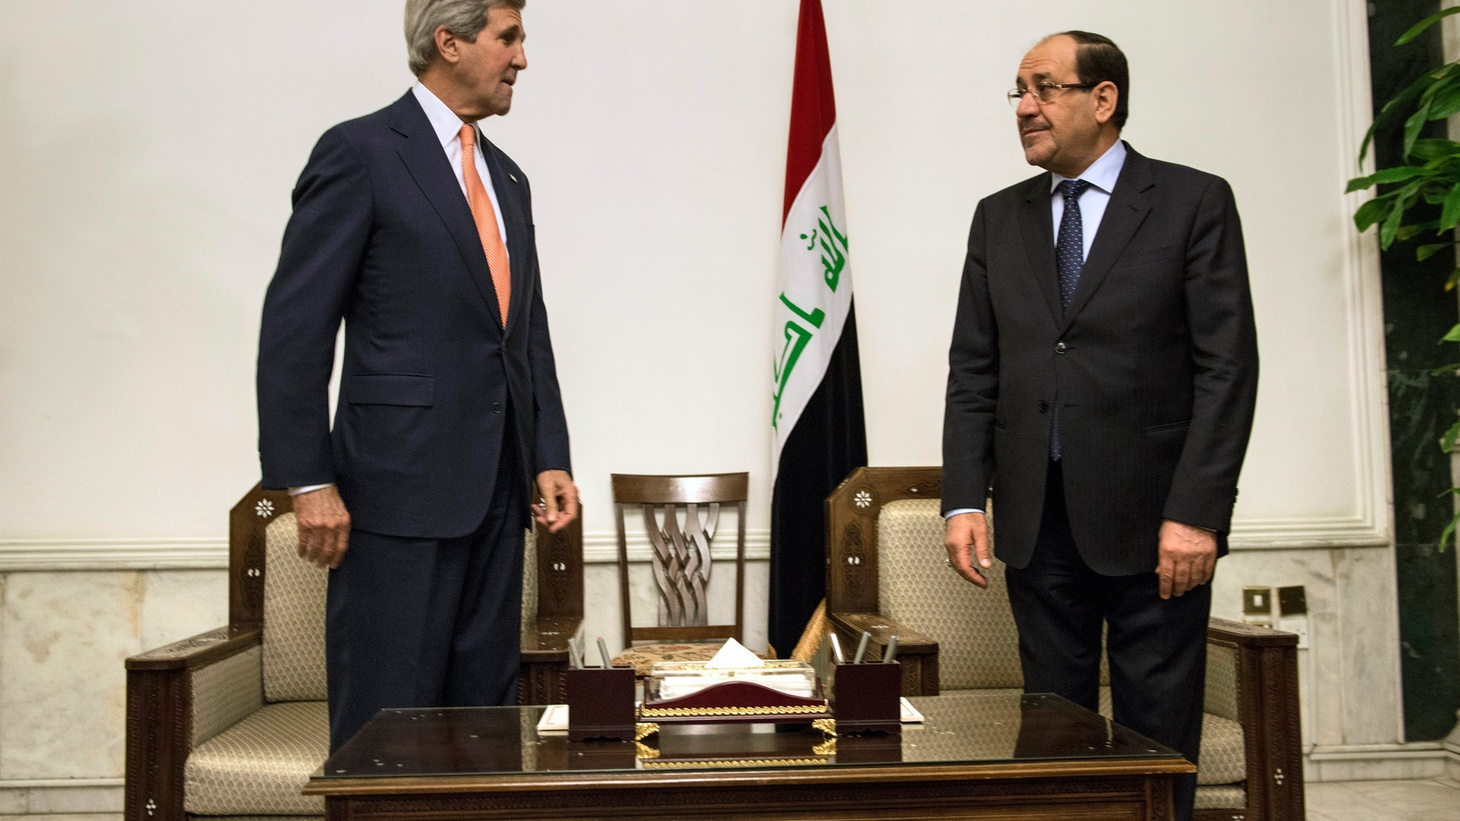 In Baghdad today, US Secretary of State of John Kerry met face to face with the embattled Iraqi Prime Minister who agreed to form a new more inclusive government starting next week.